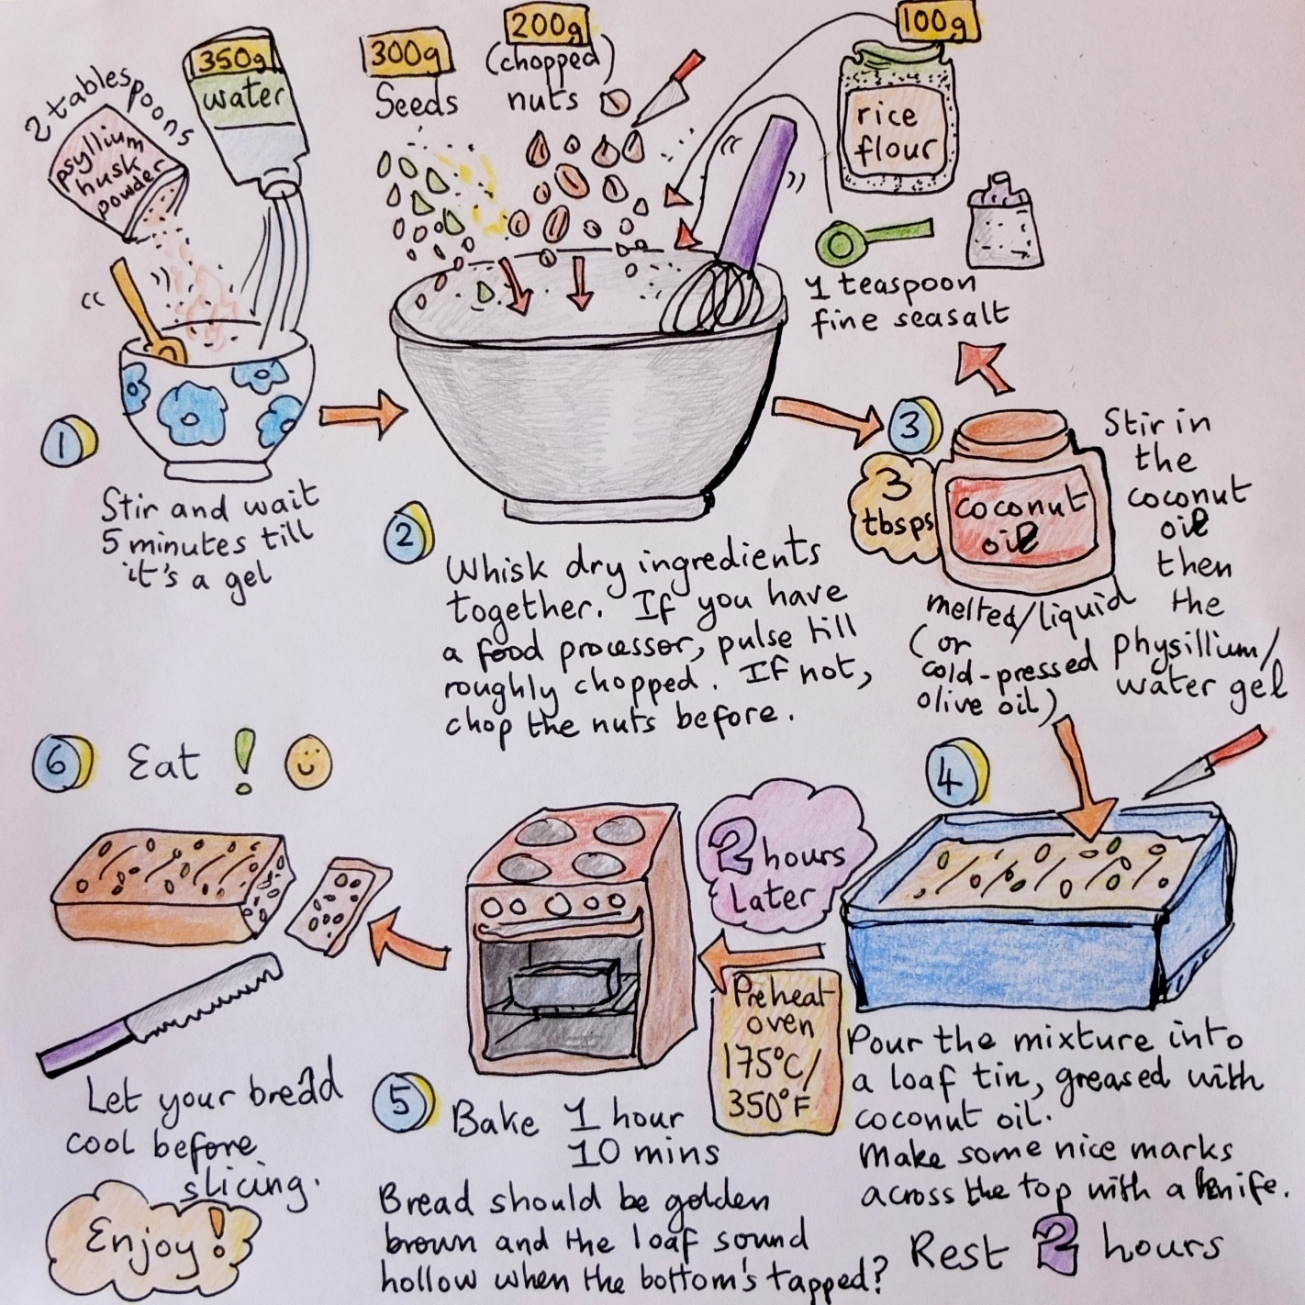 Seed and nut bread illustrated recipe